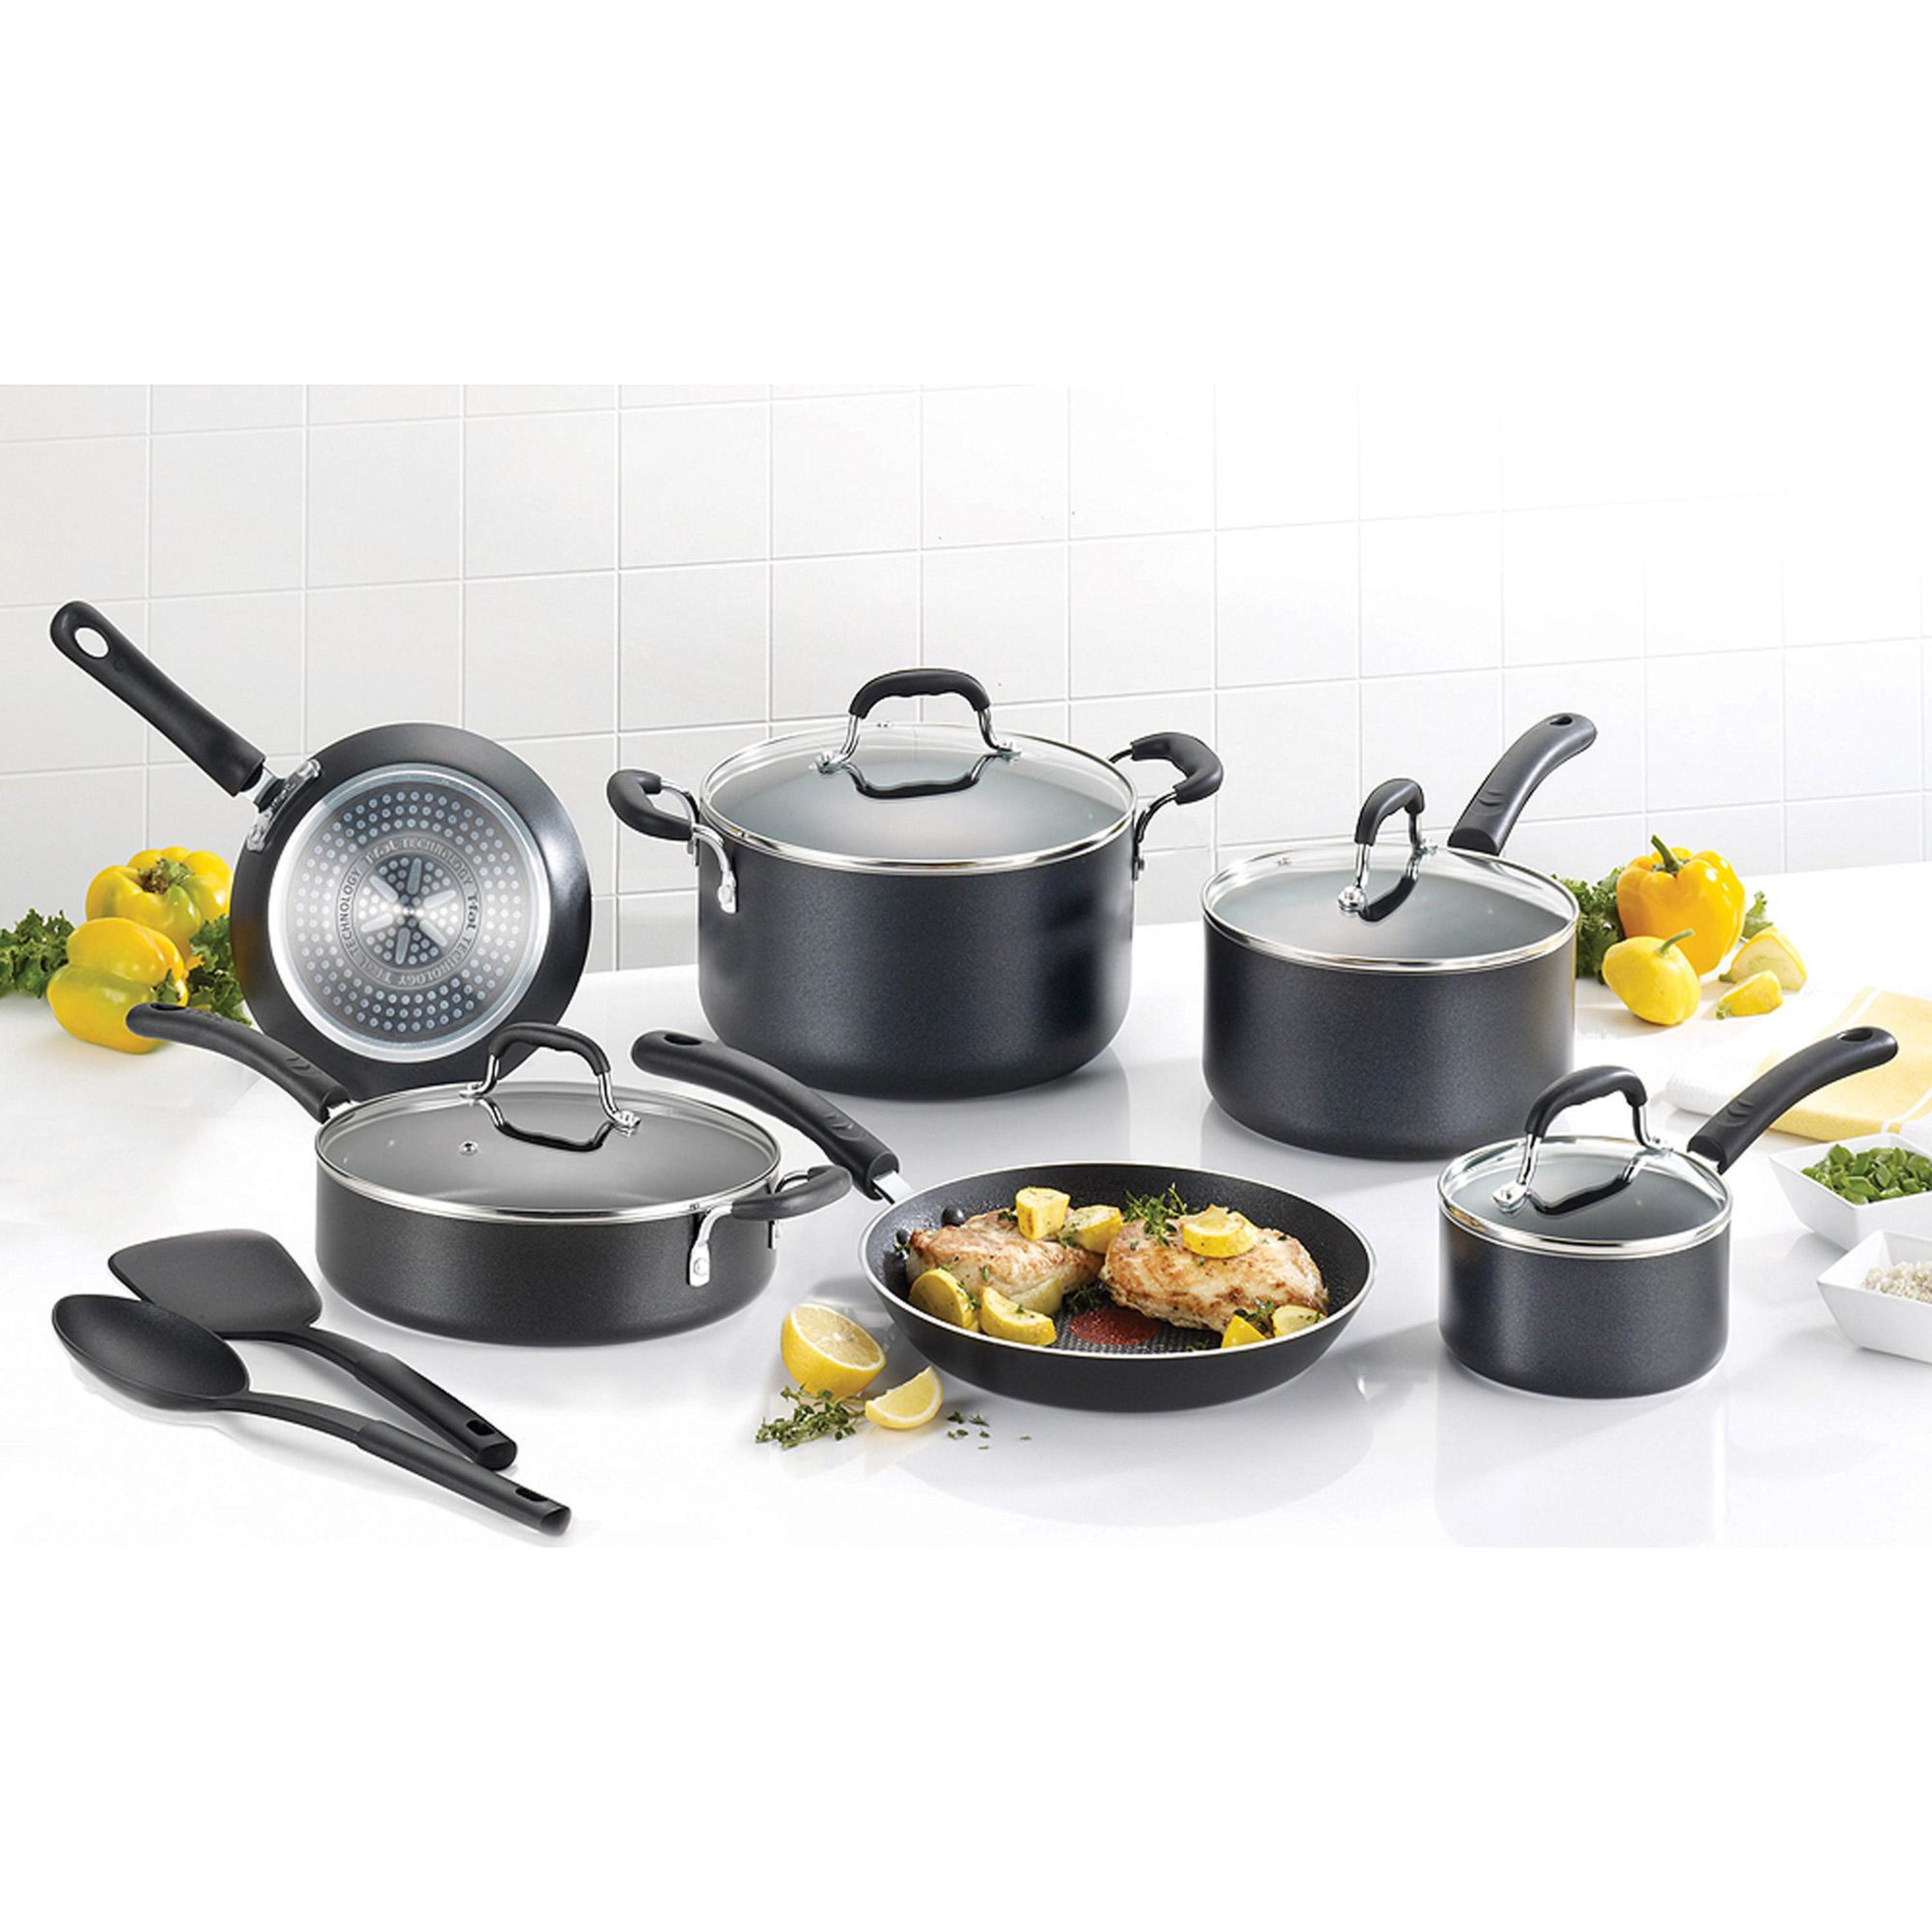 T - Fal Expert Pro Nonstick 12 - Piece Cookware Set, Black